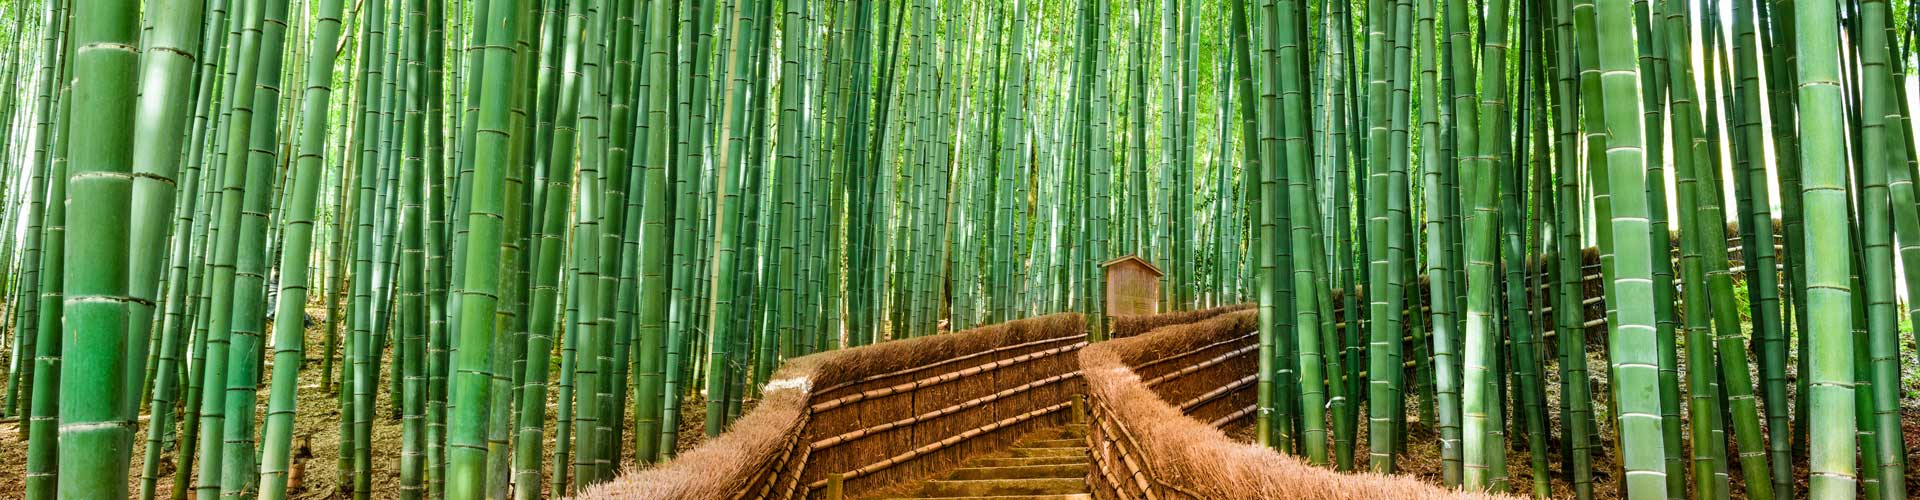 Bamboo - is a raw material of natural origin, has long been used by man in everyday life. More than two centuries ago it was used for the construction of houses, bridges, boats, home paraphernalia, musical instruments. In eastern medicine, the plant was used as a sedative and cosmetic 78